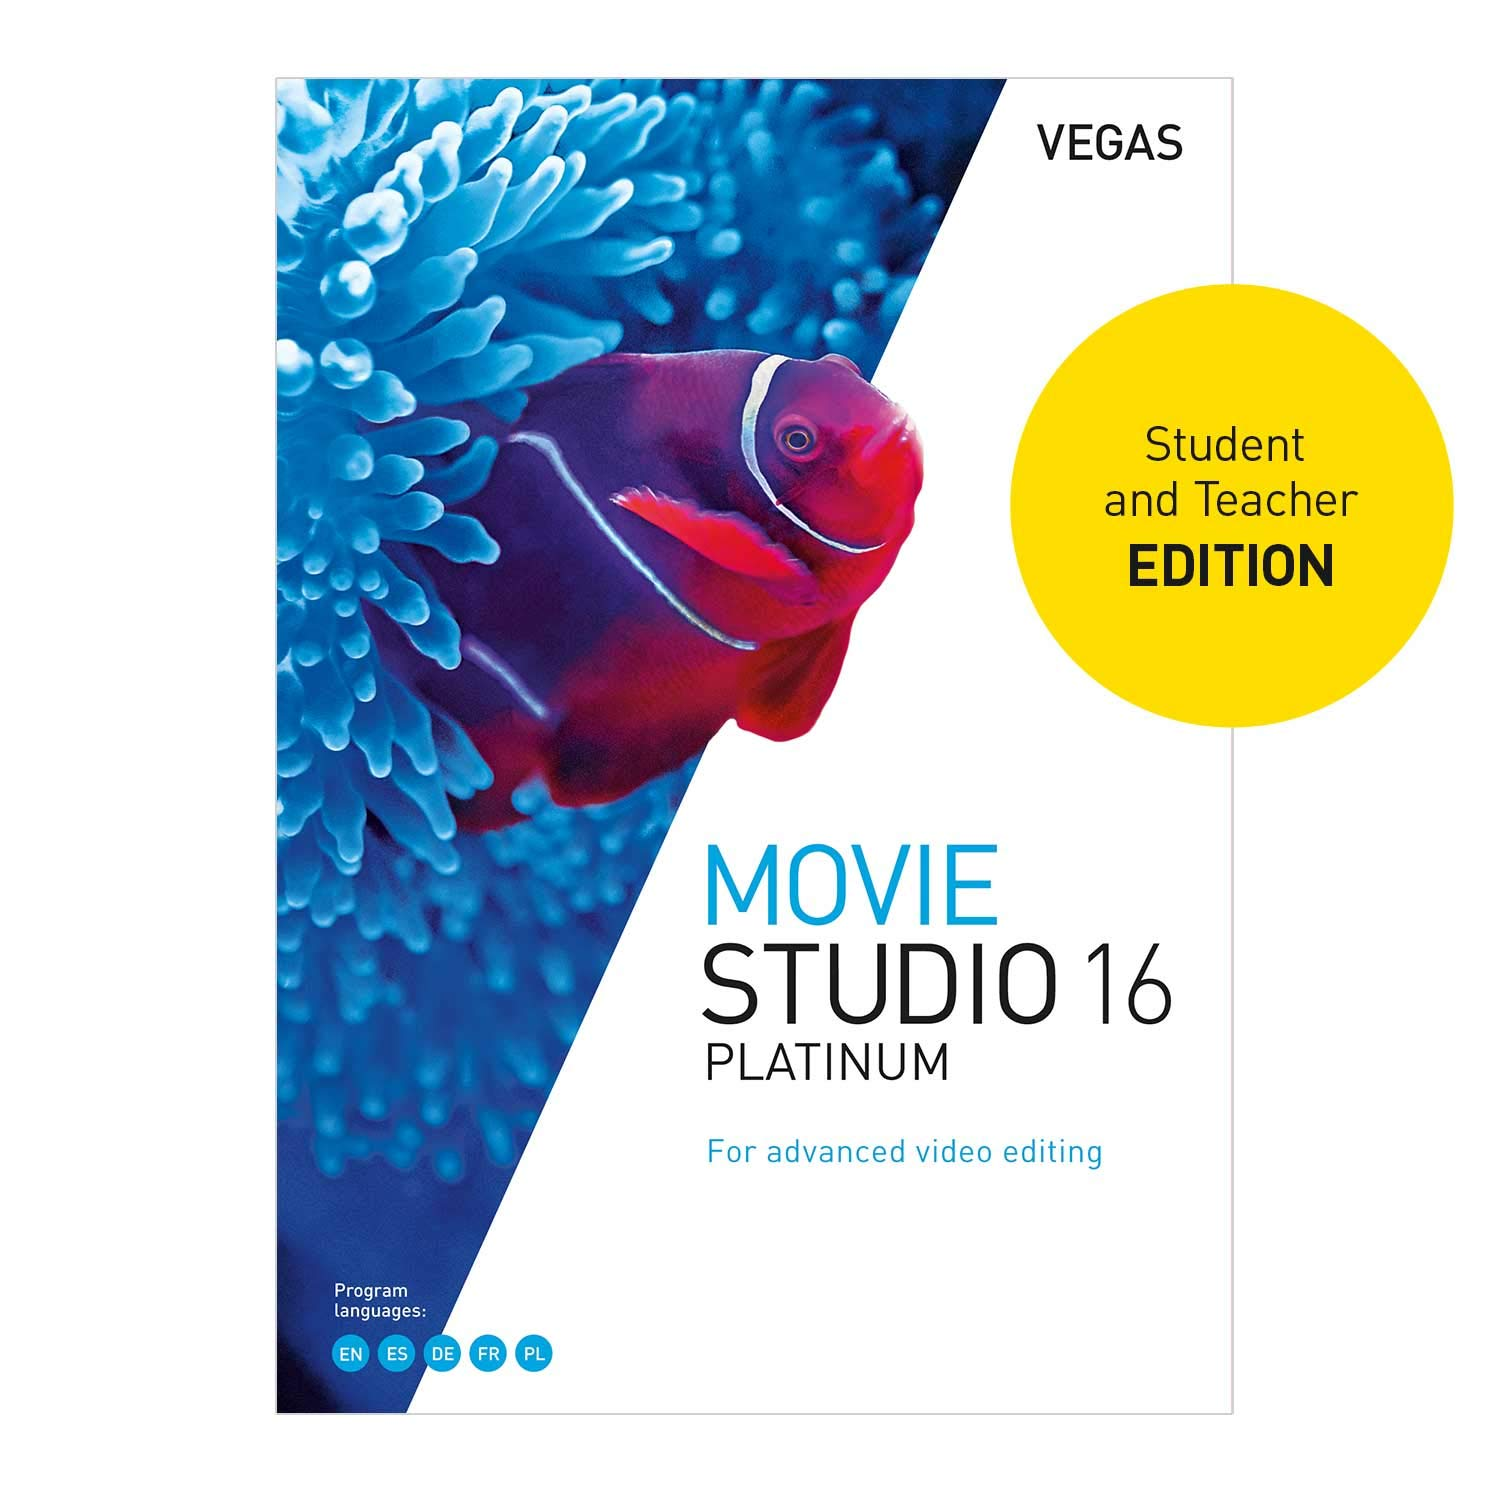 VEGAS Movie Studio 16 Platinum [PC Download] by VEGAS